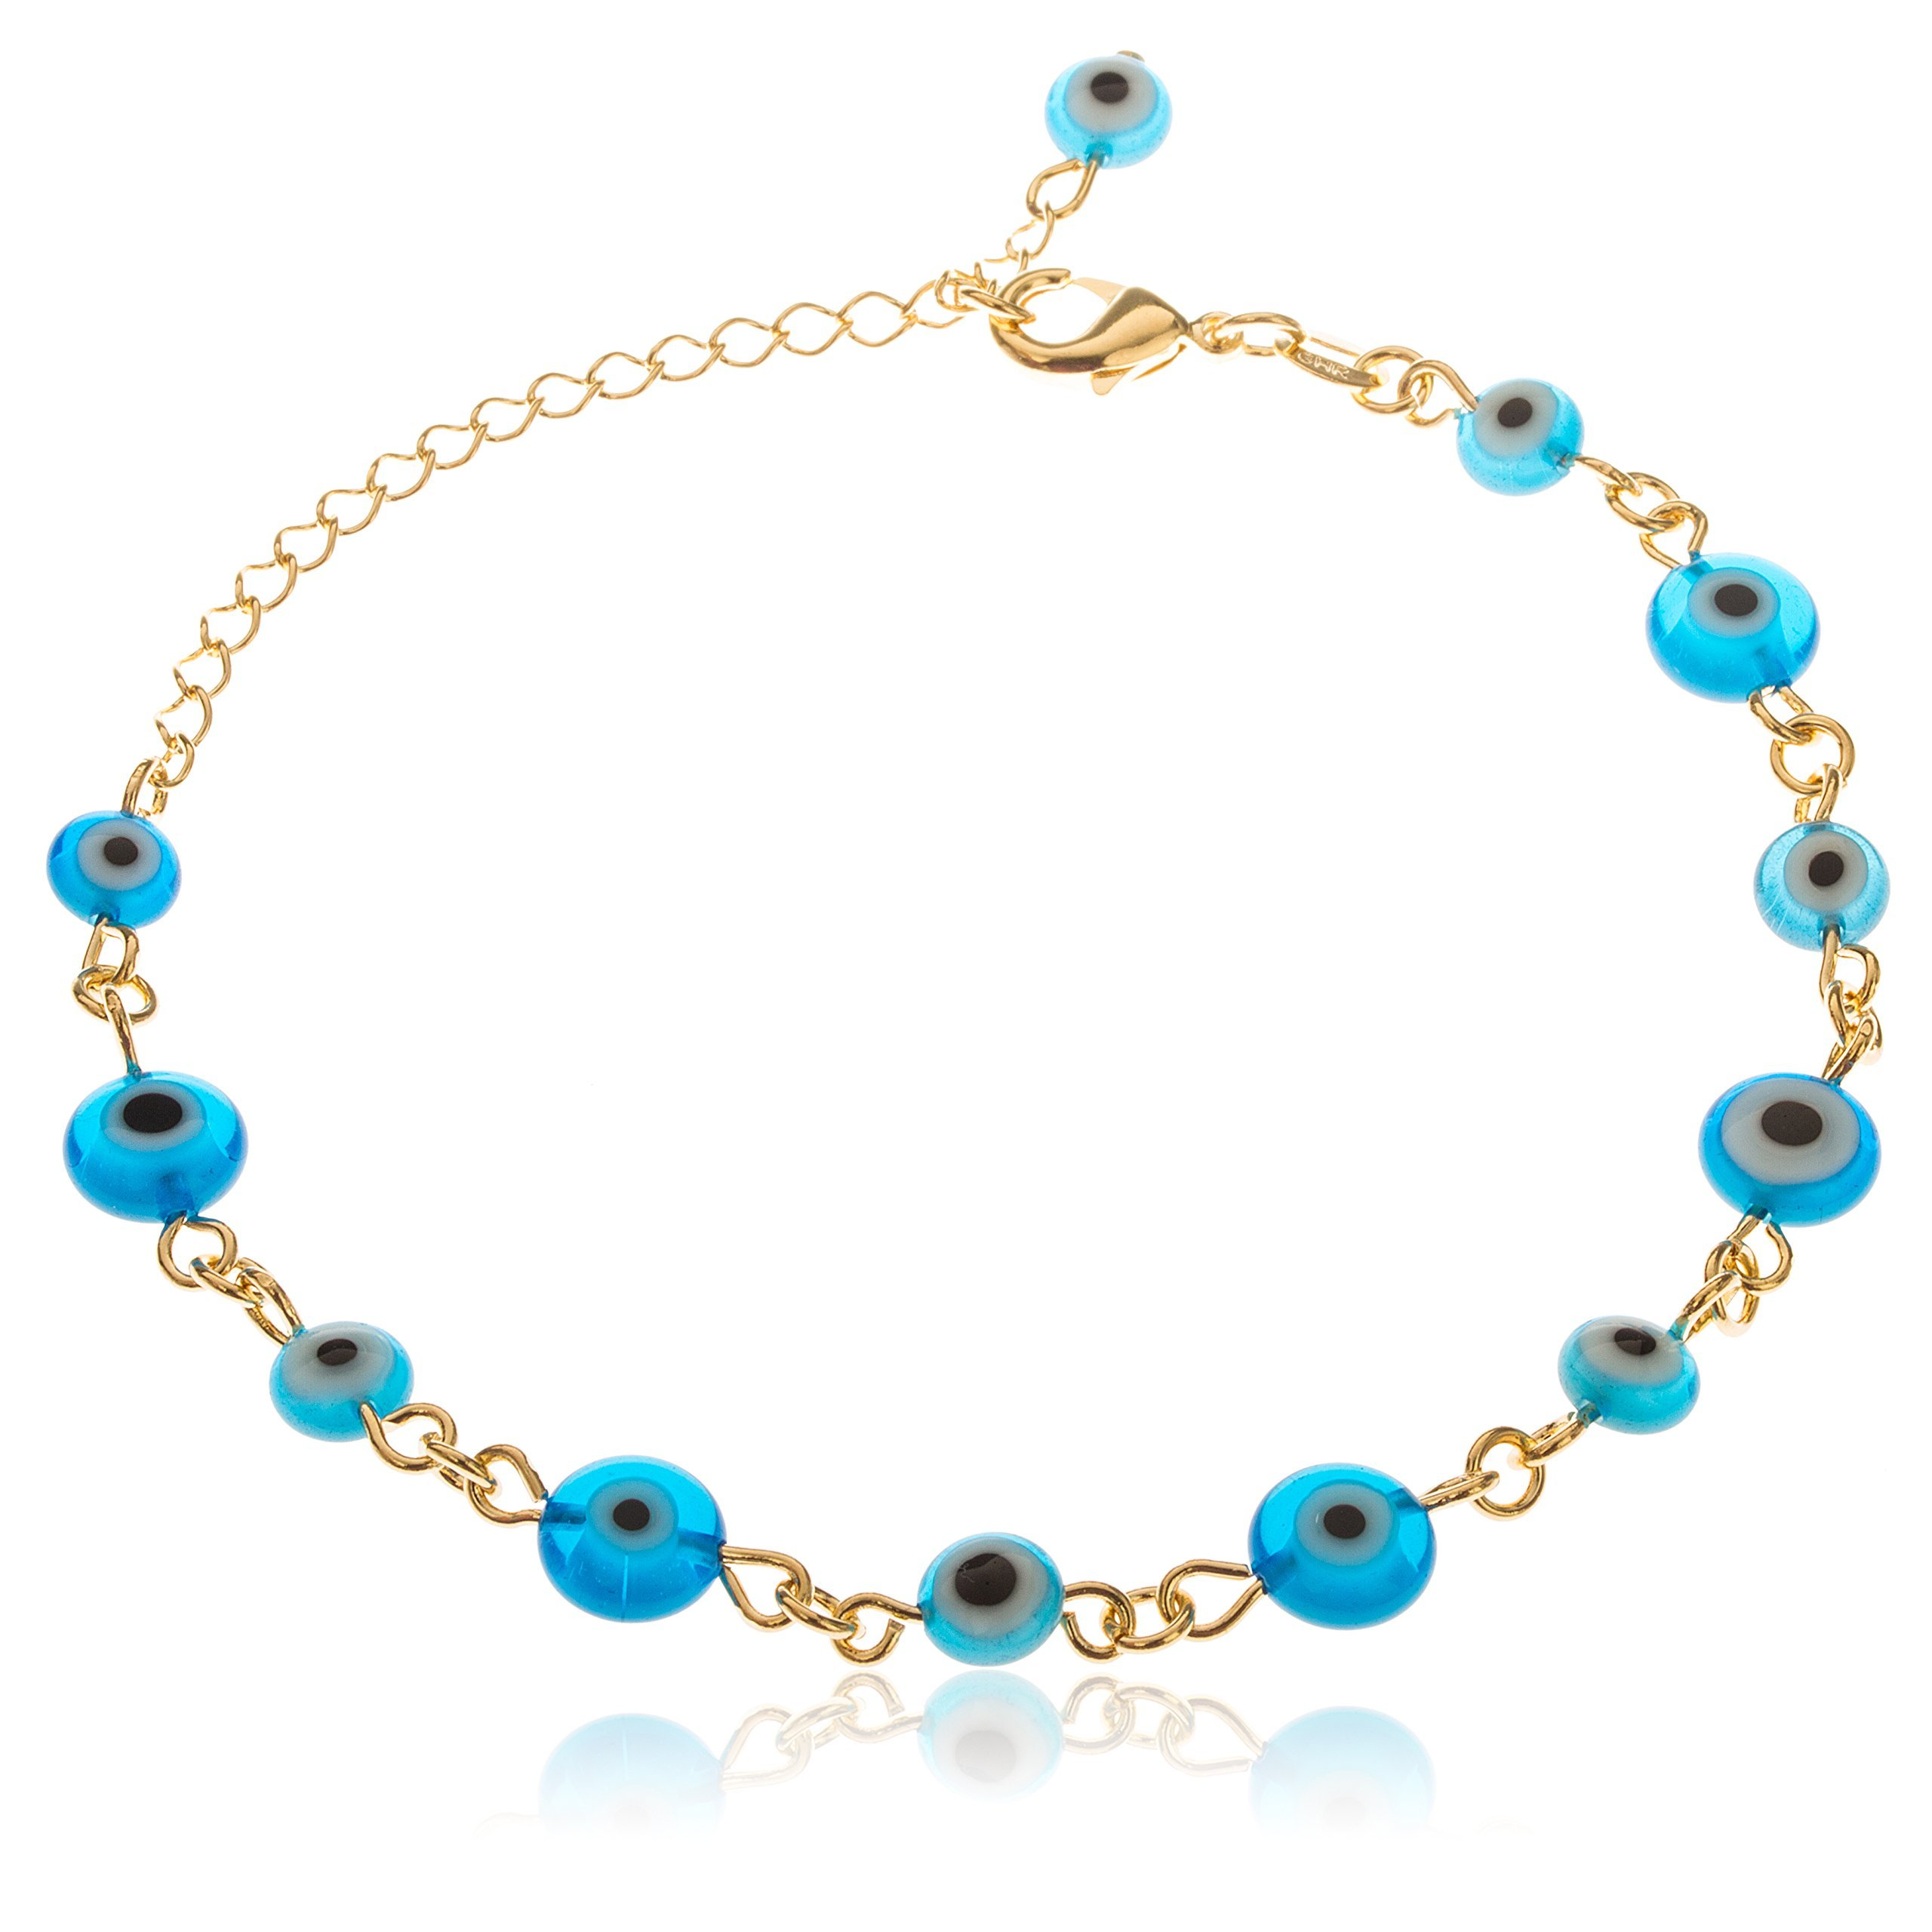 Two Year Warranty Gold Overlay with Alternating Shades of Blue Evil Eye Style 10 Inch Anklet with Dangling Charm (T-944)